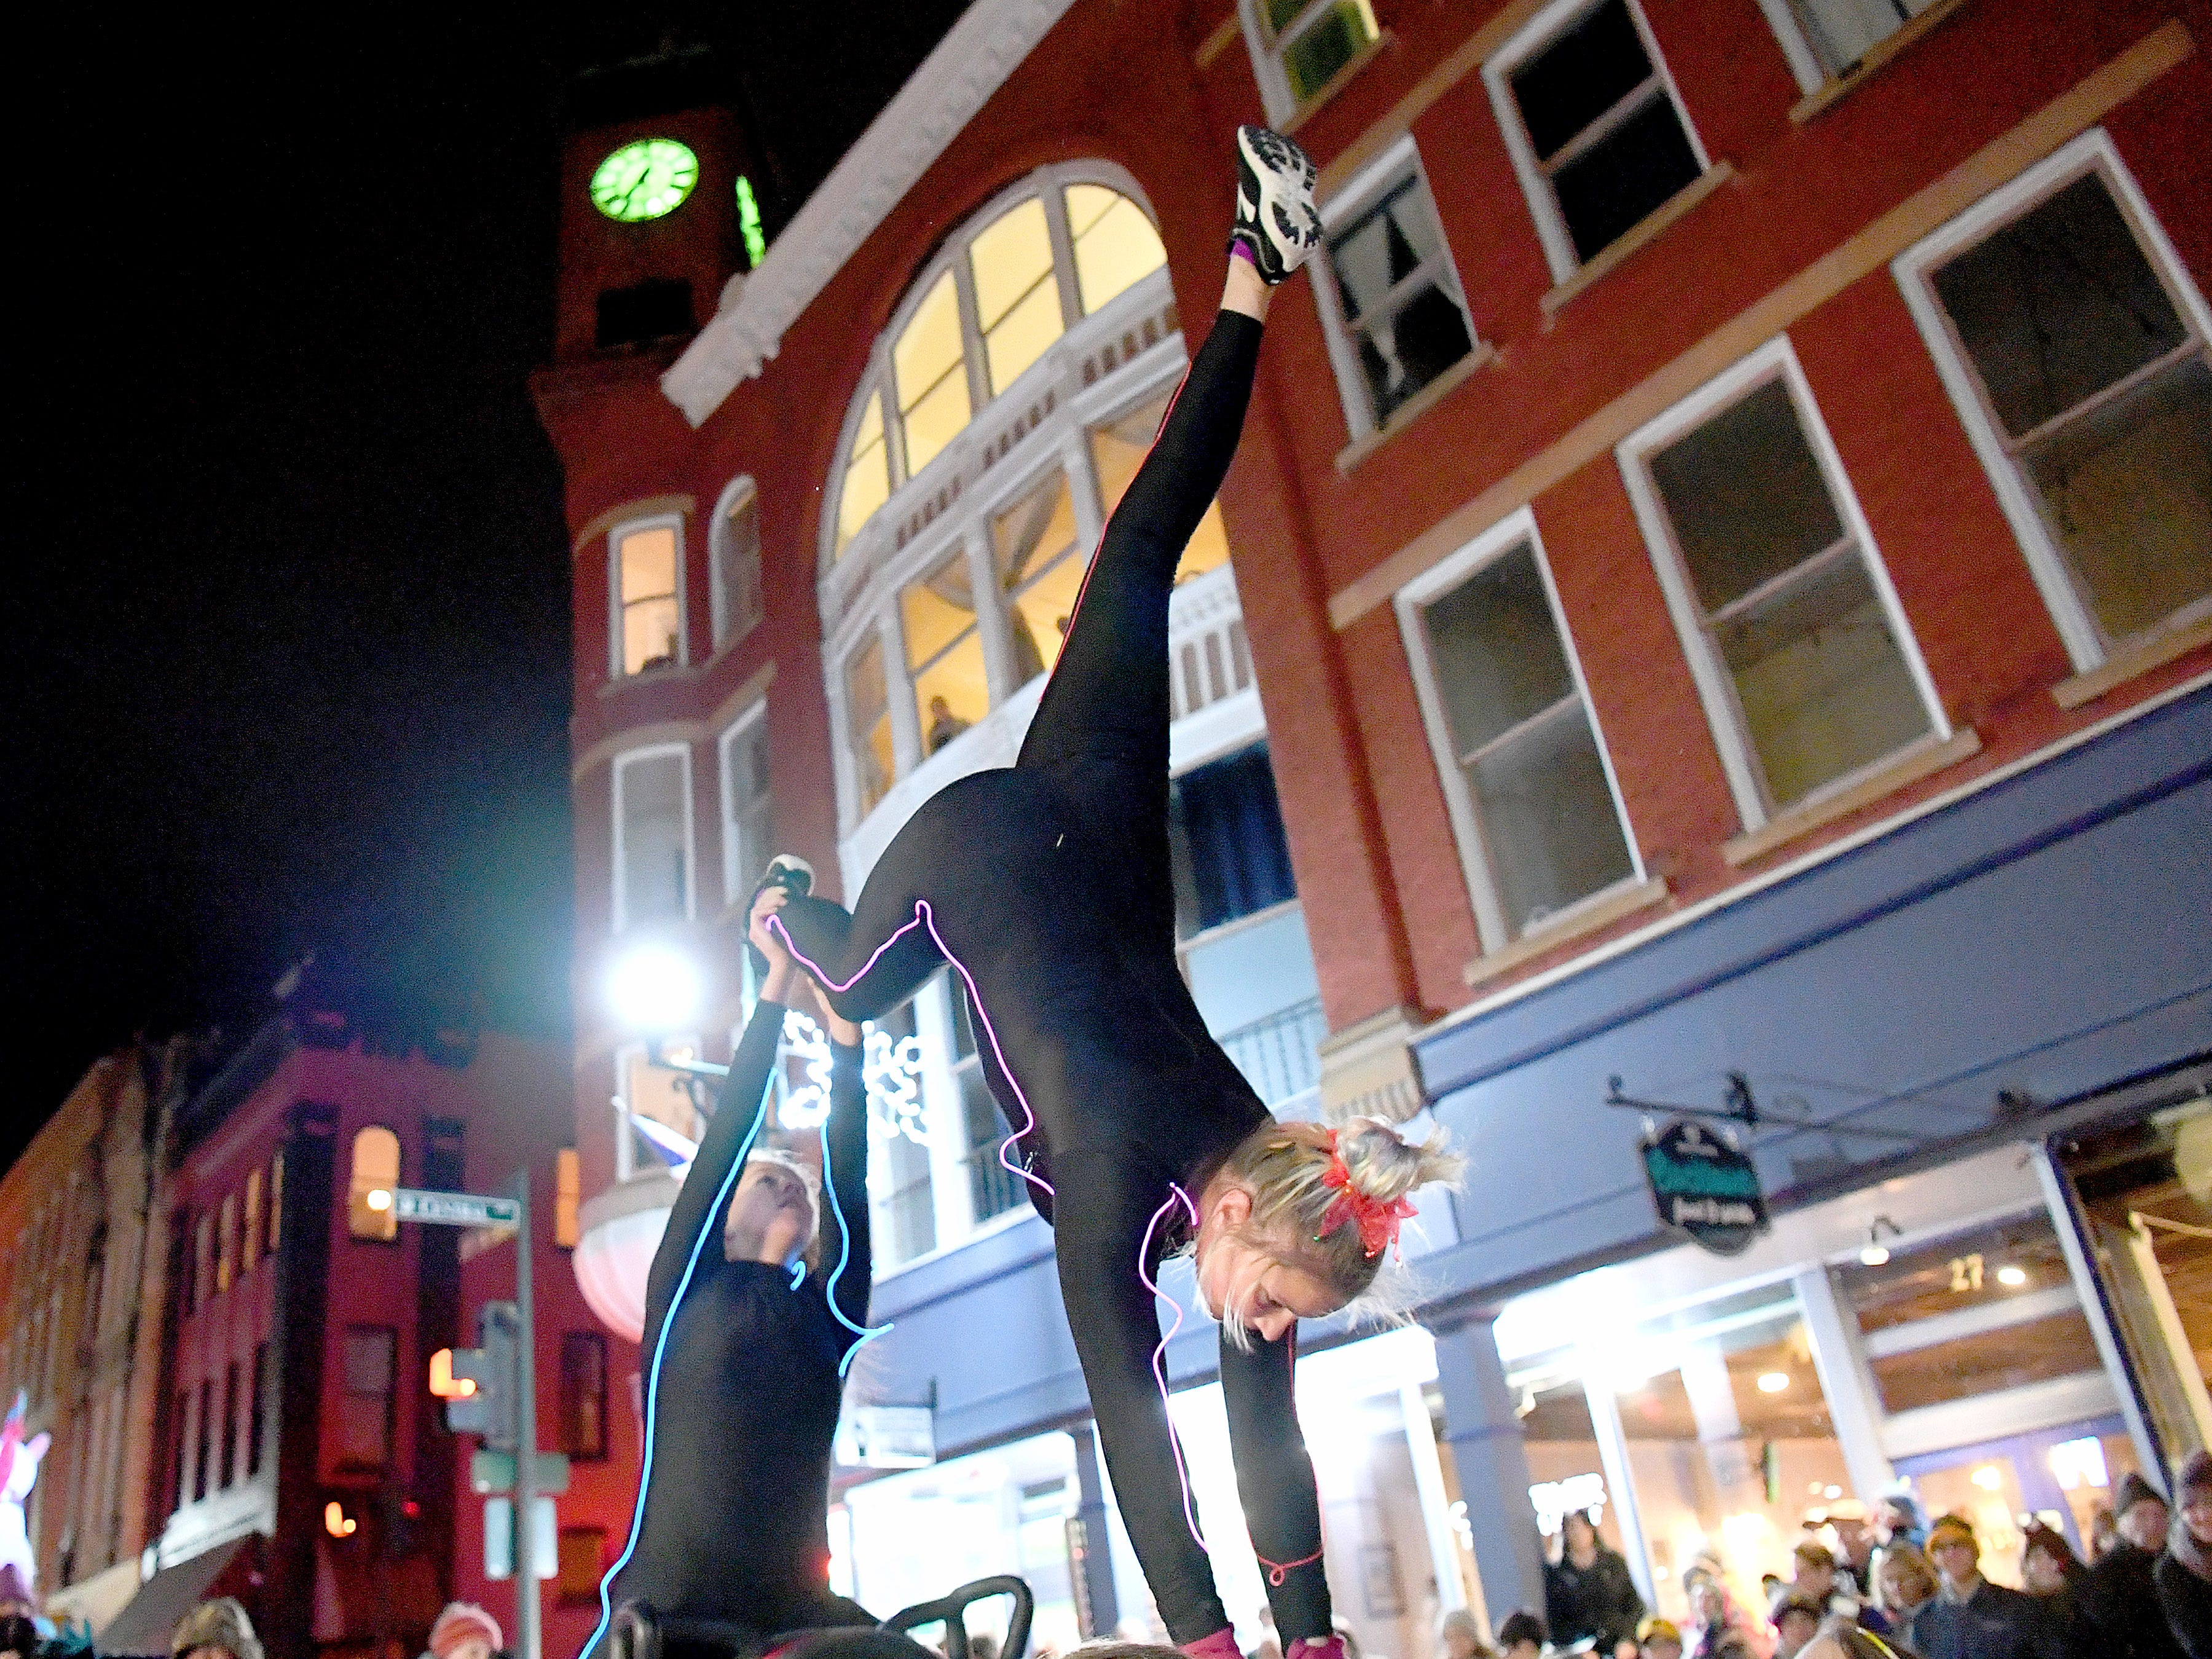 Gymnastic style moves performed on a float in the Staunton Christmas Parade on Monday, Nov. 26, 2018.